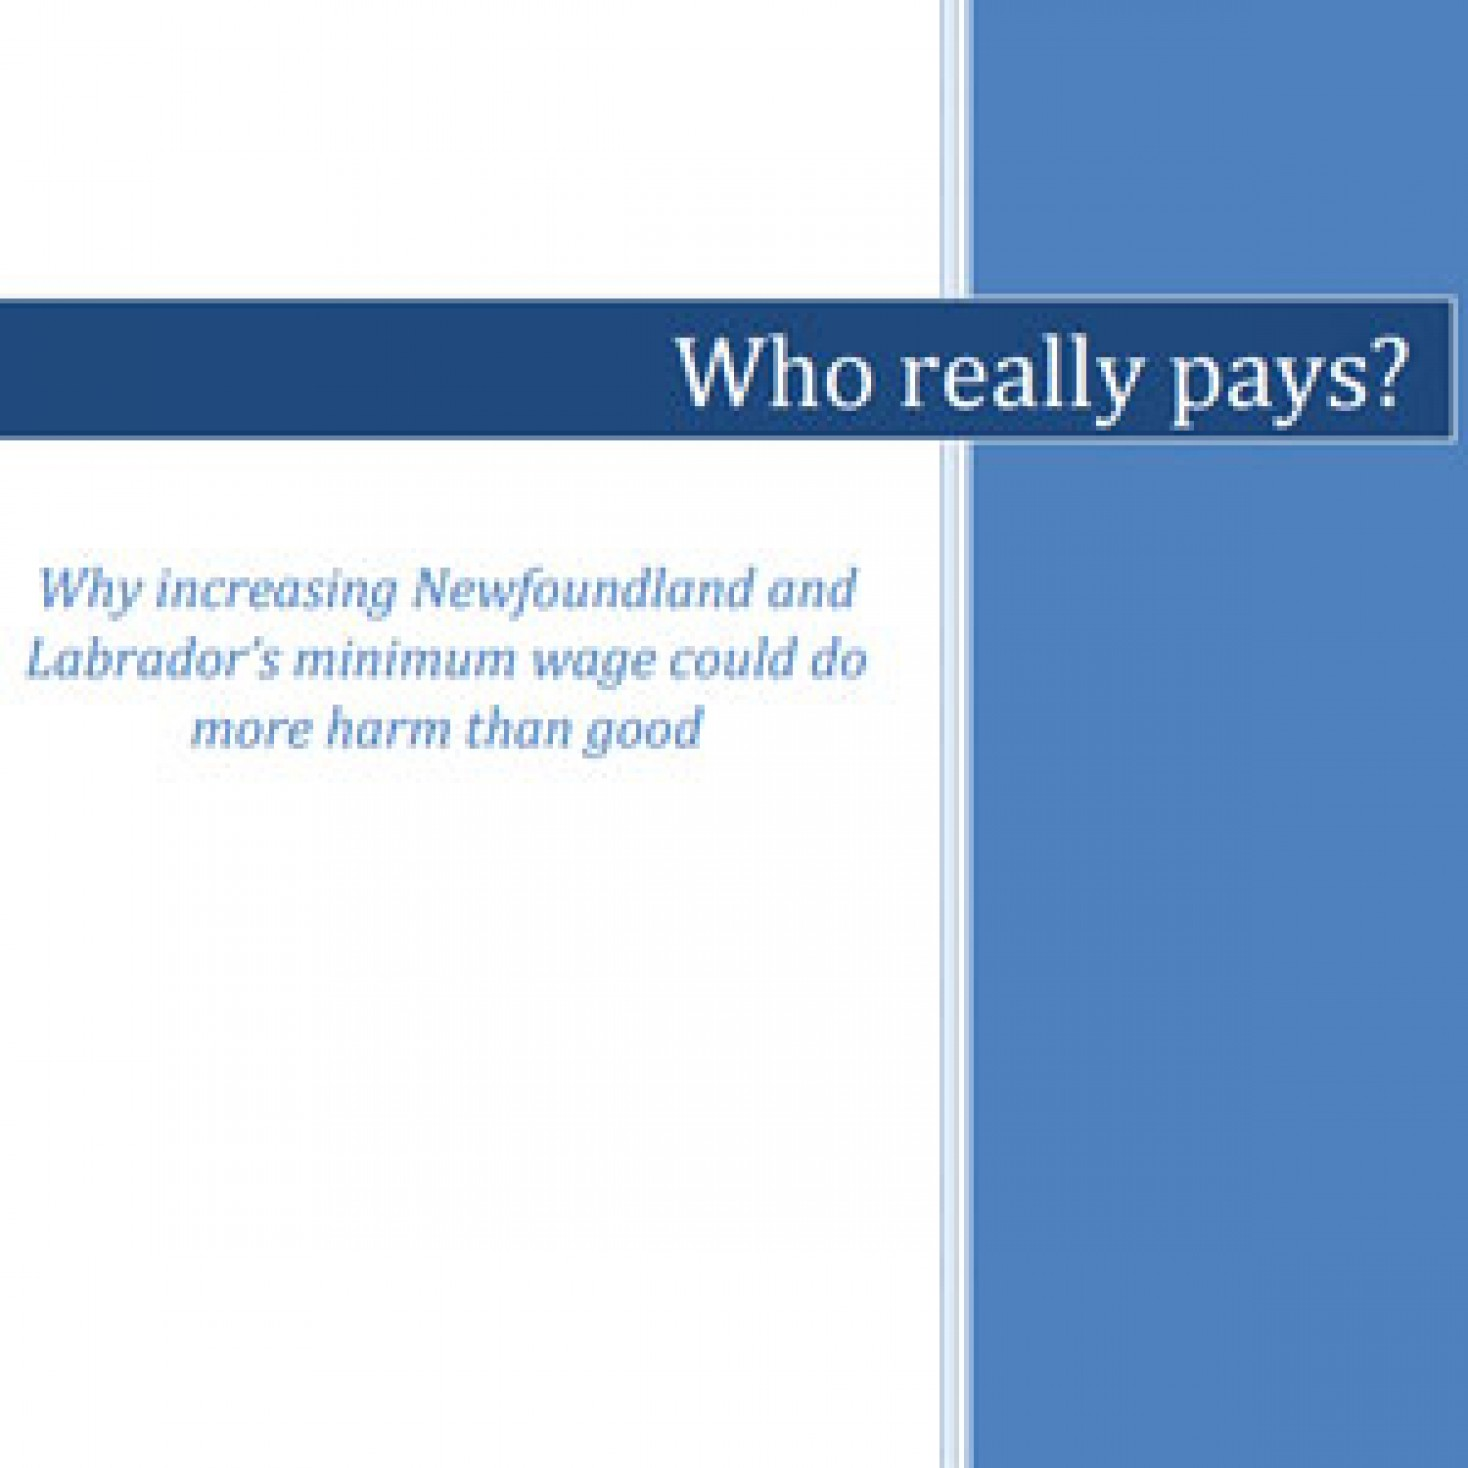 Who really pays? Why increasing Newfoundland & Labrador's minimum wage could do more harm than good